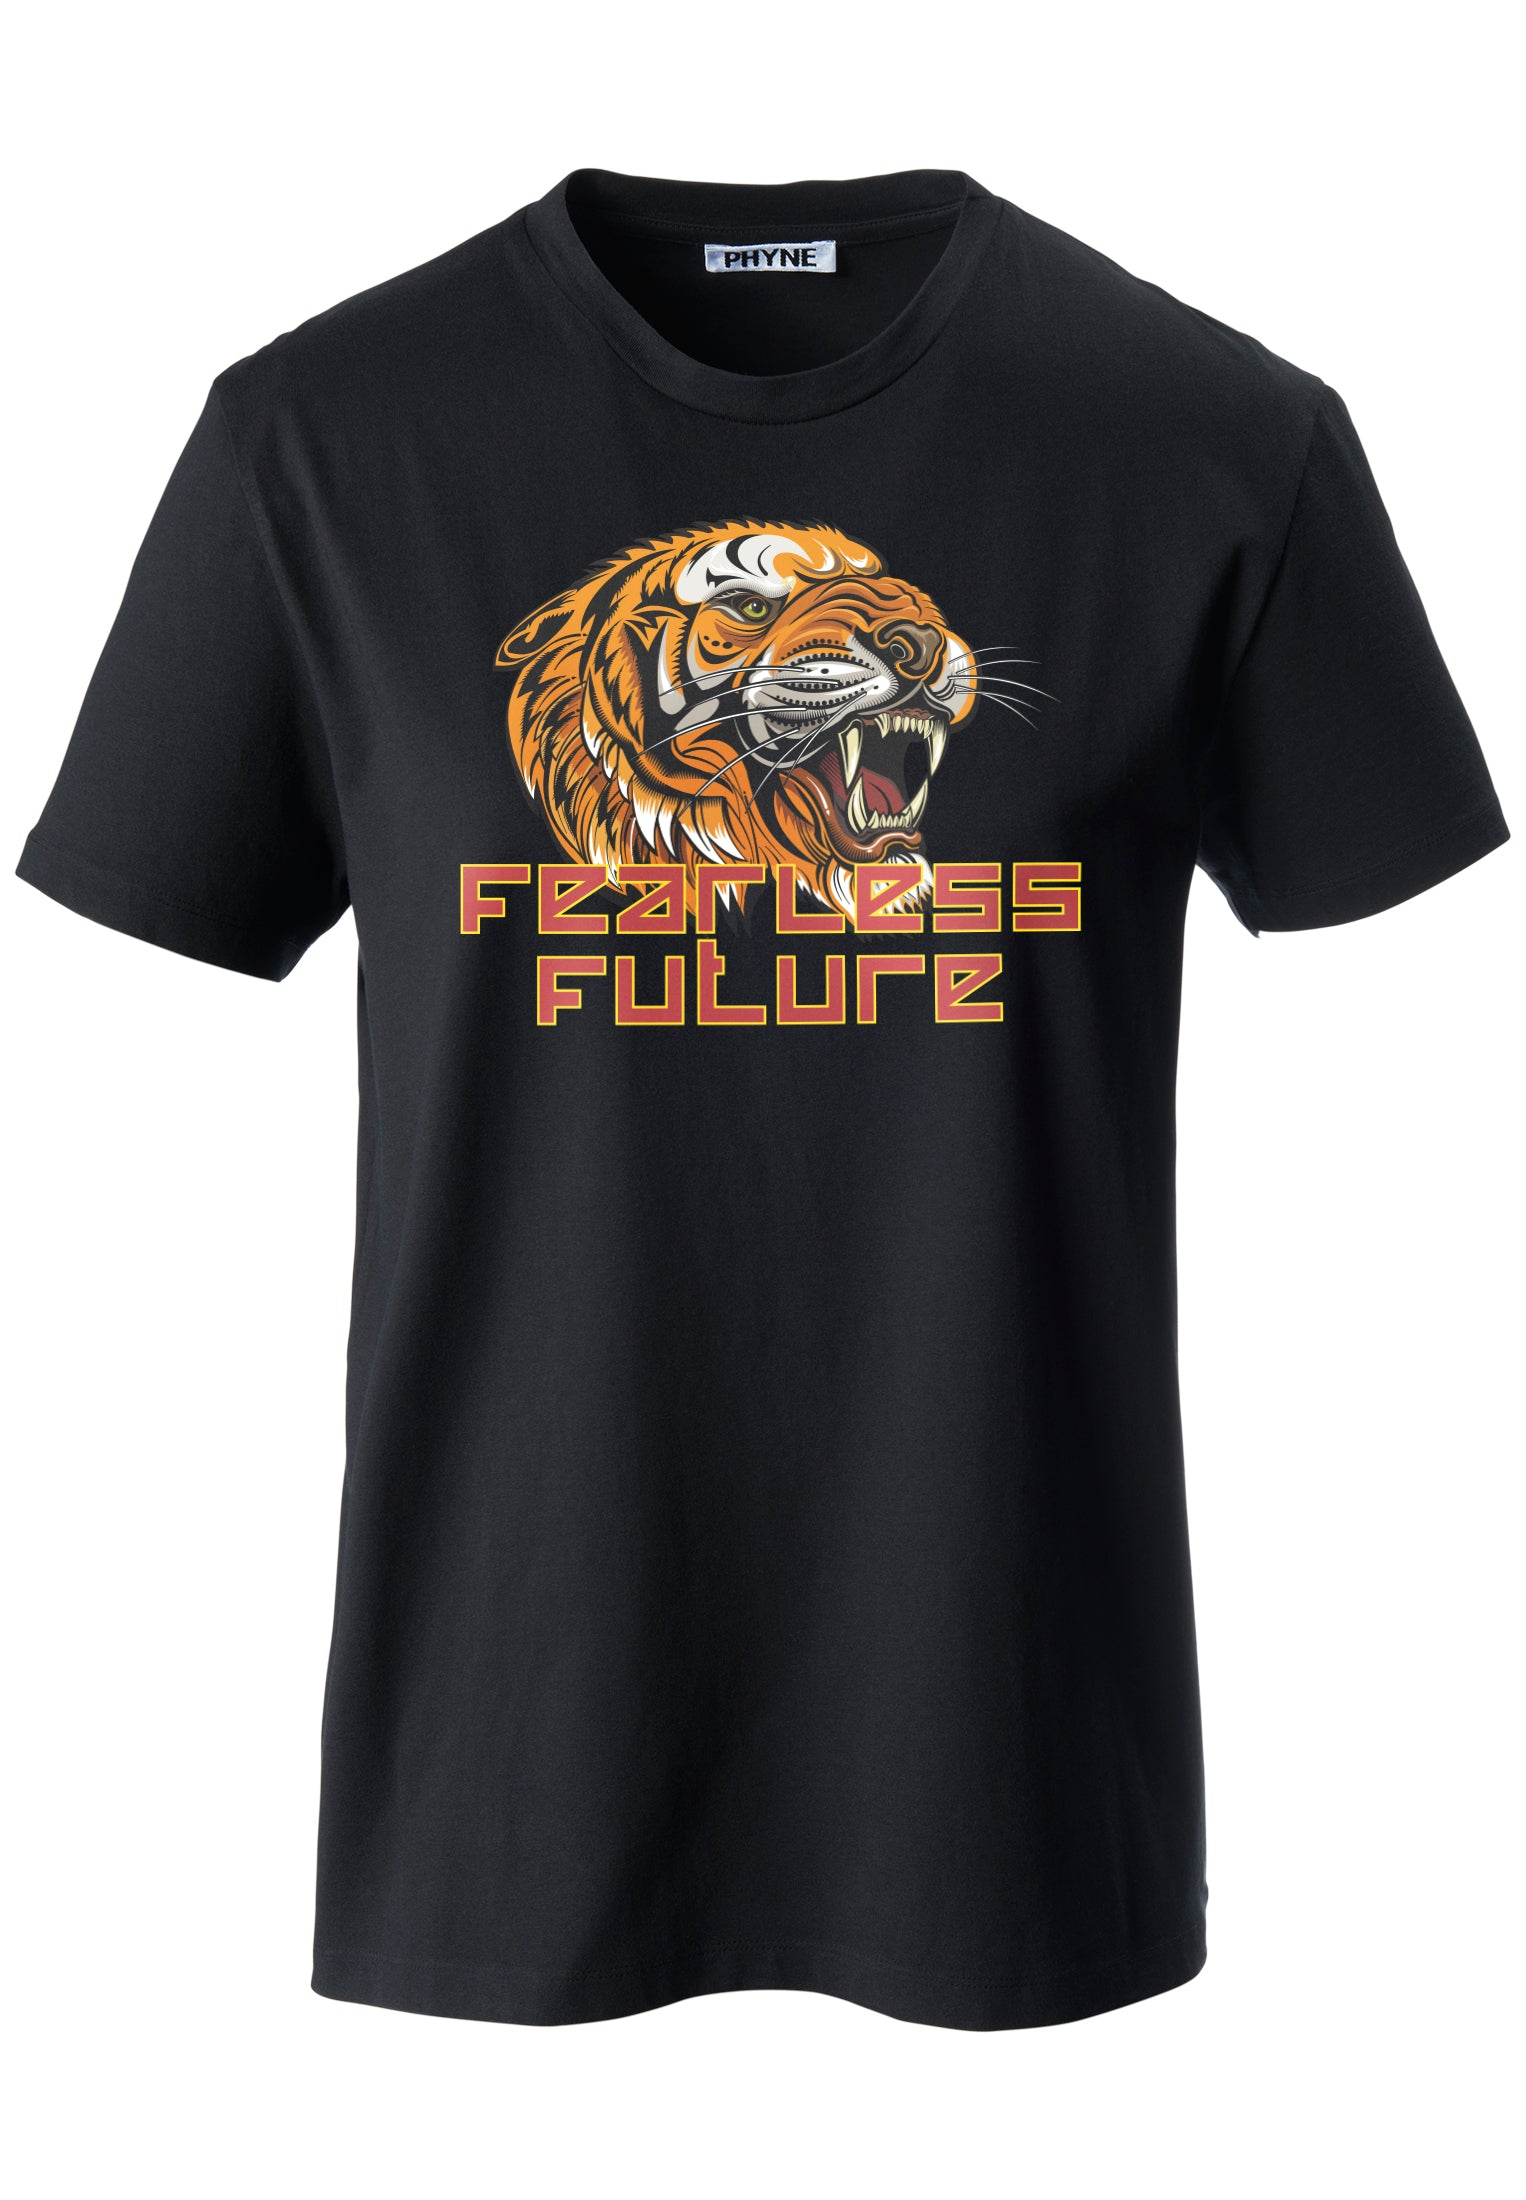 Black| Fearless Future Unisex T-Shirt mit Tiger Print in schwarz